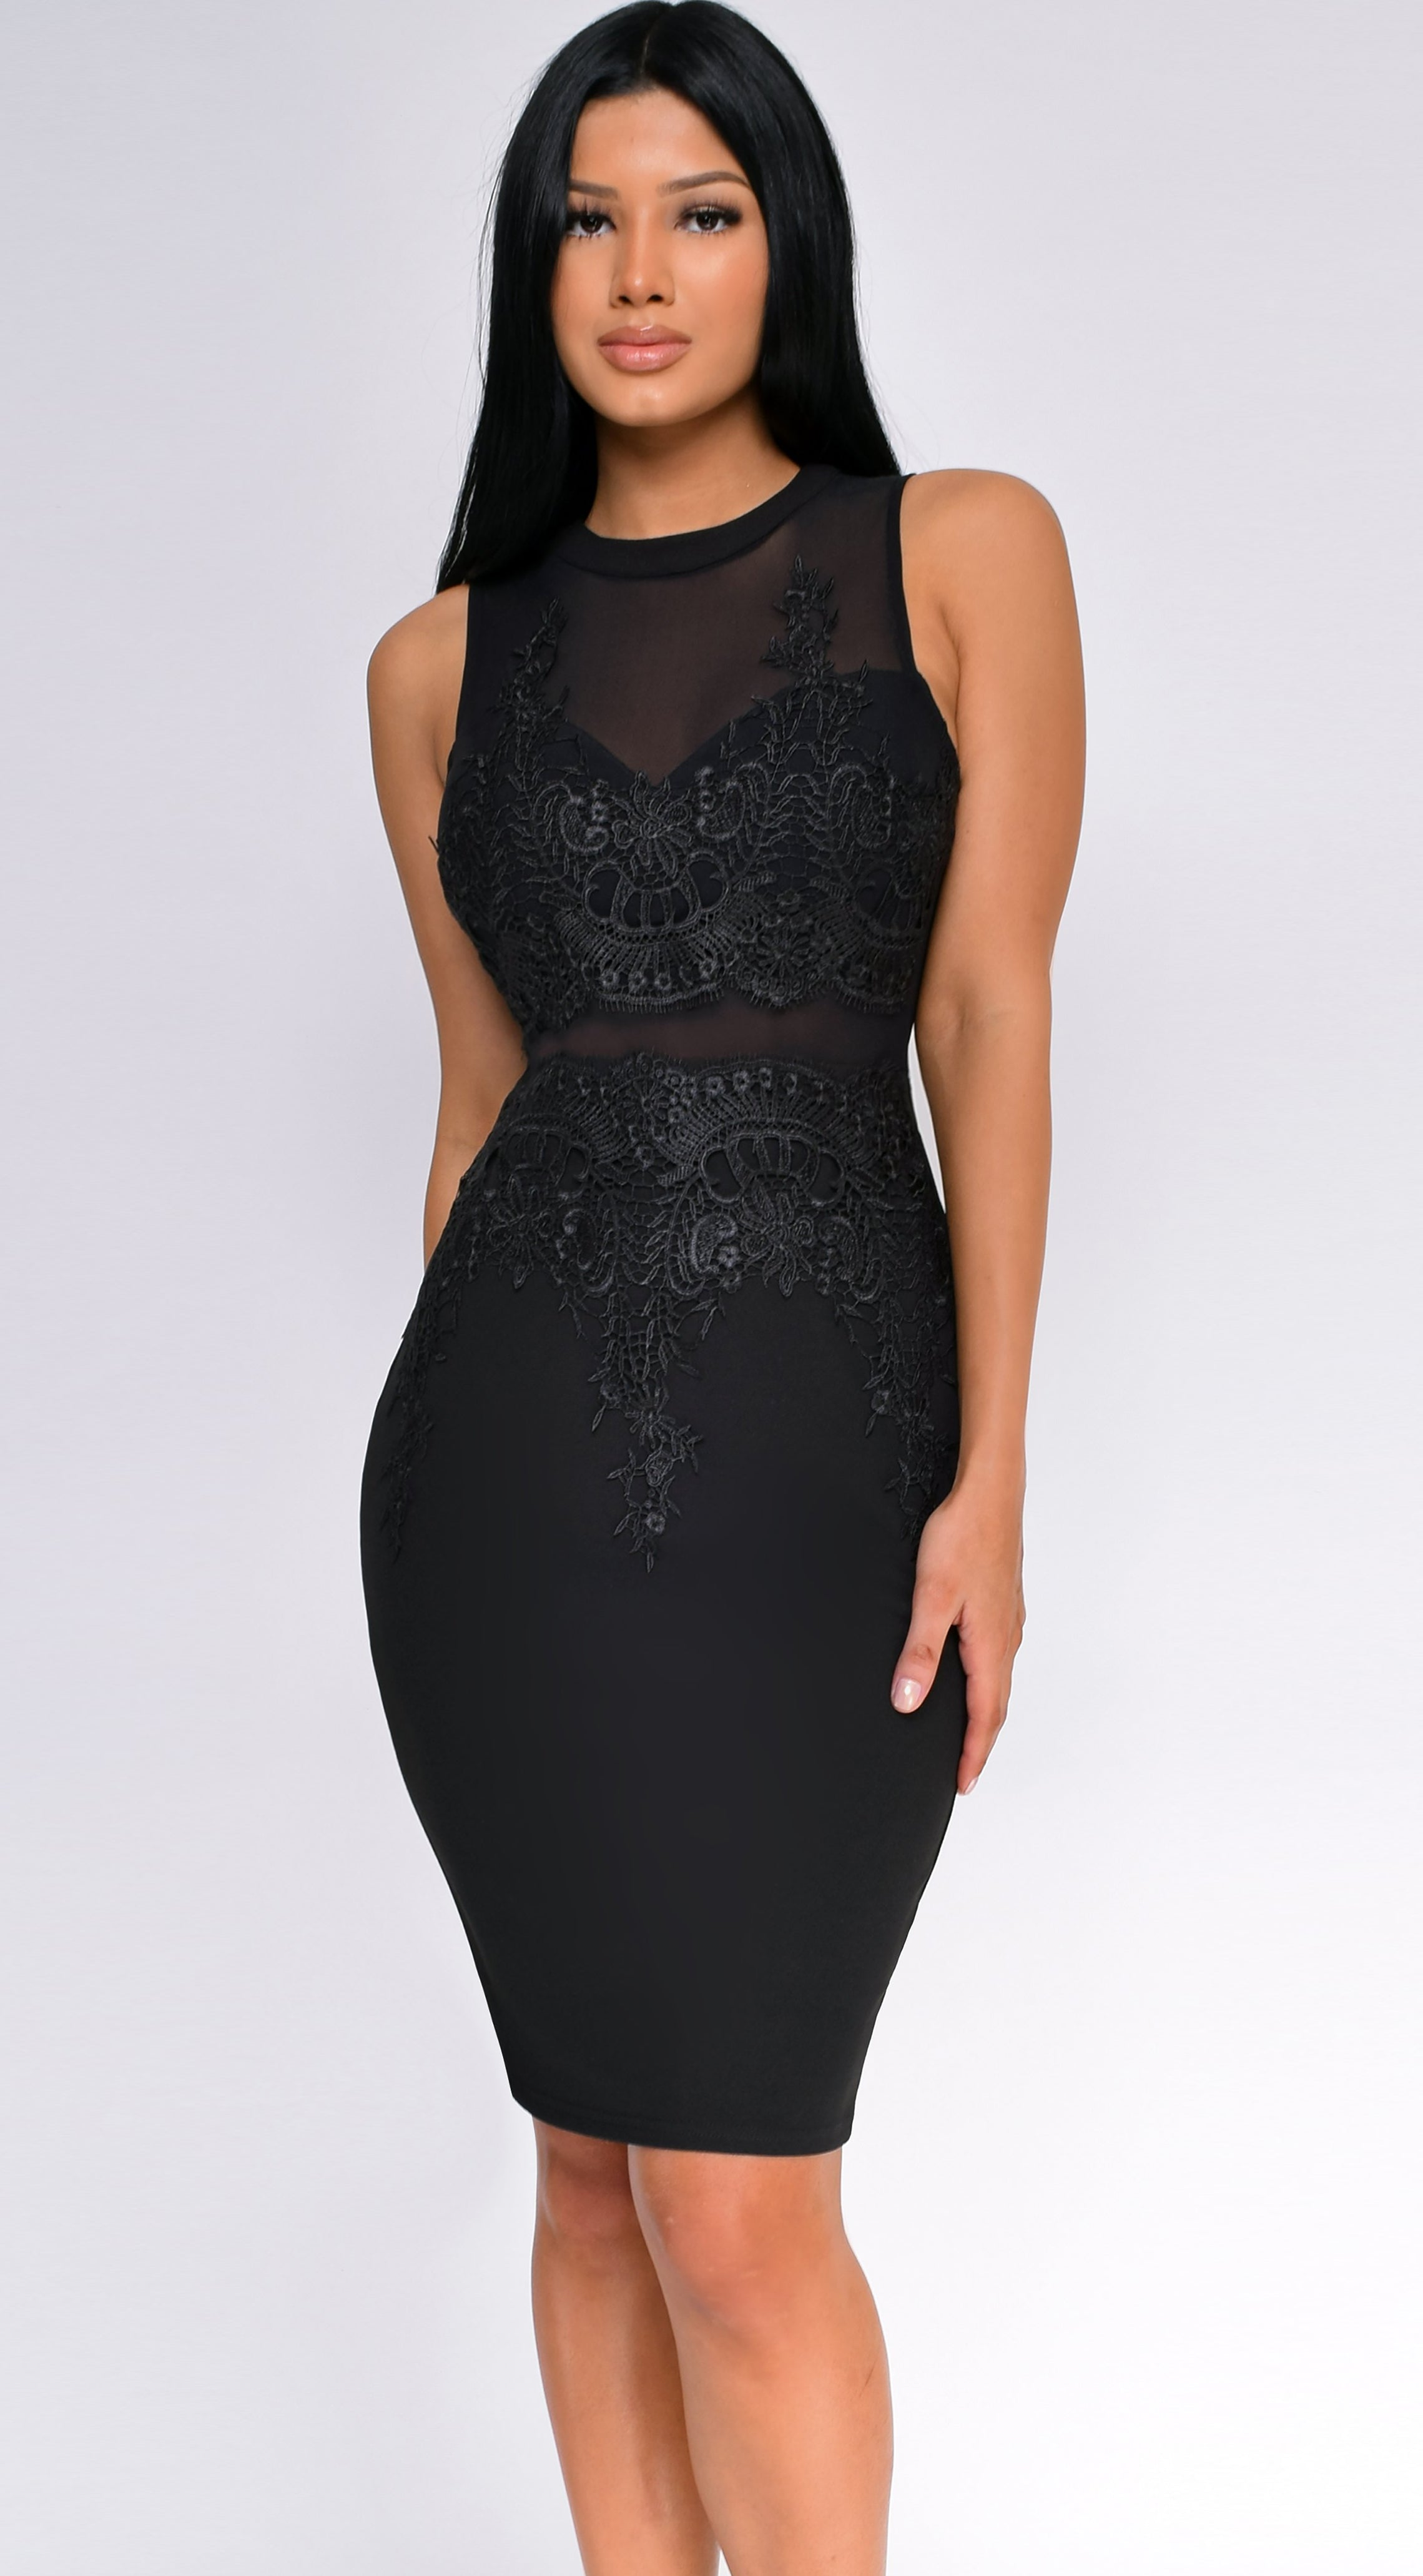 Mika Black Lace Applique Mesh Dress